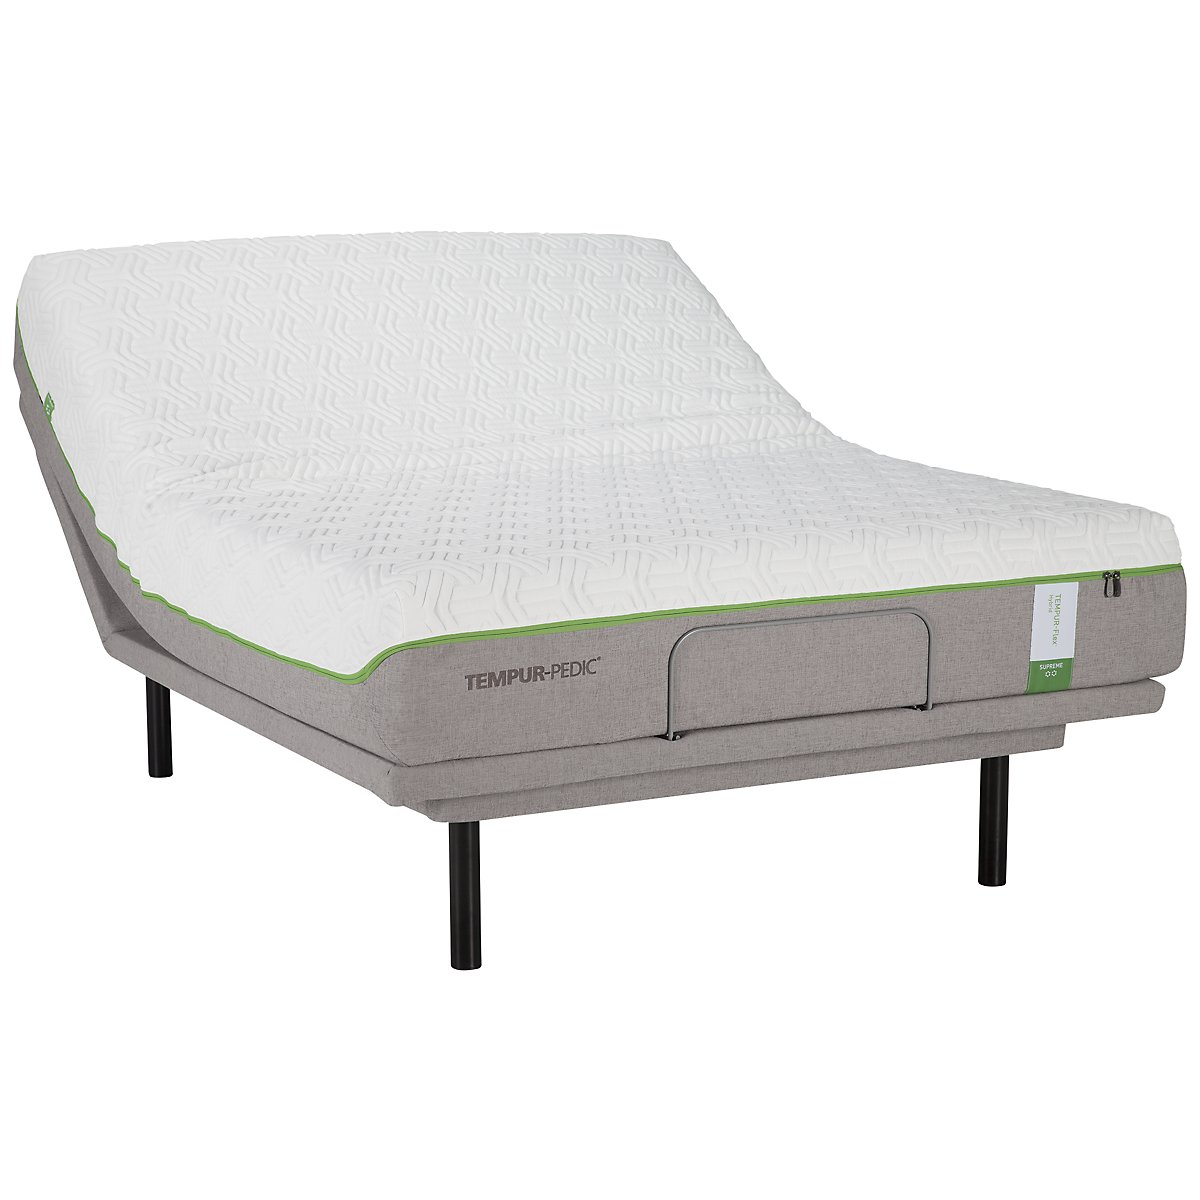 TEMPUR-Flex® Supreme TEMPUR-Ergo™ Plus Adjustable Mattress Set